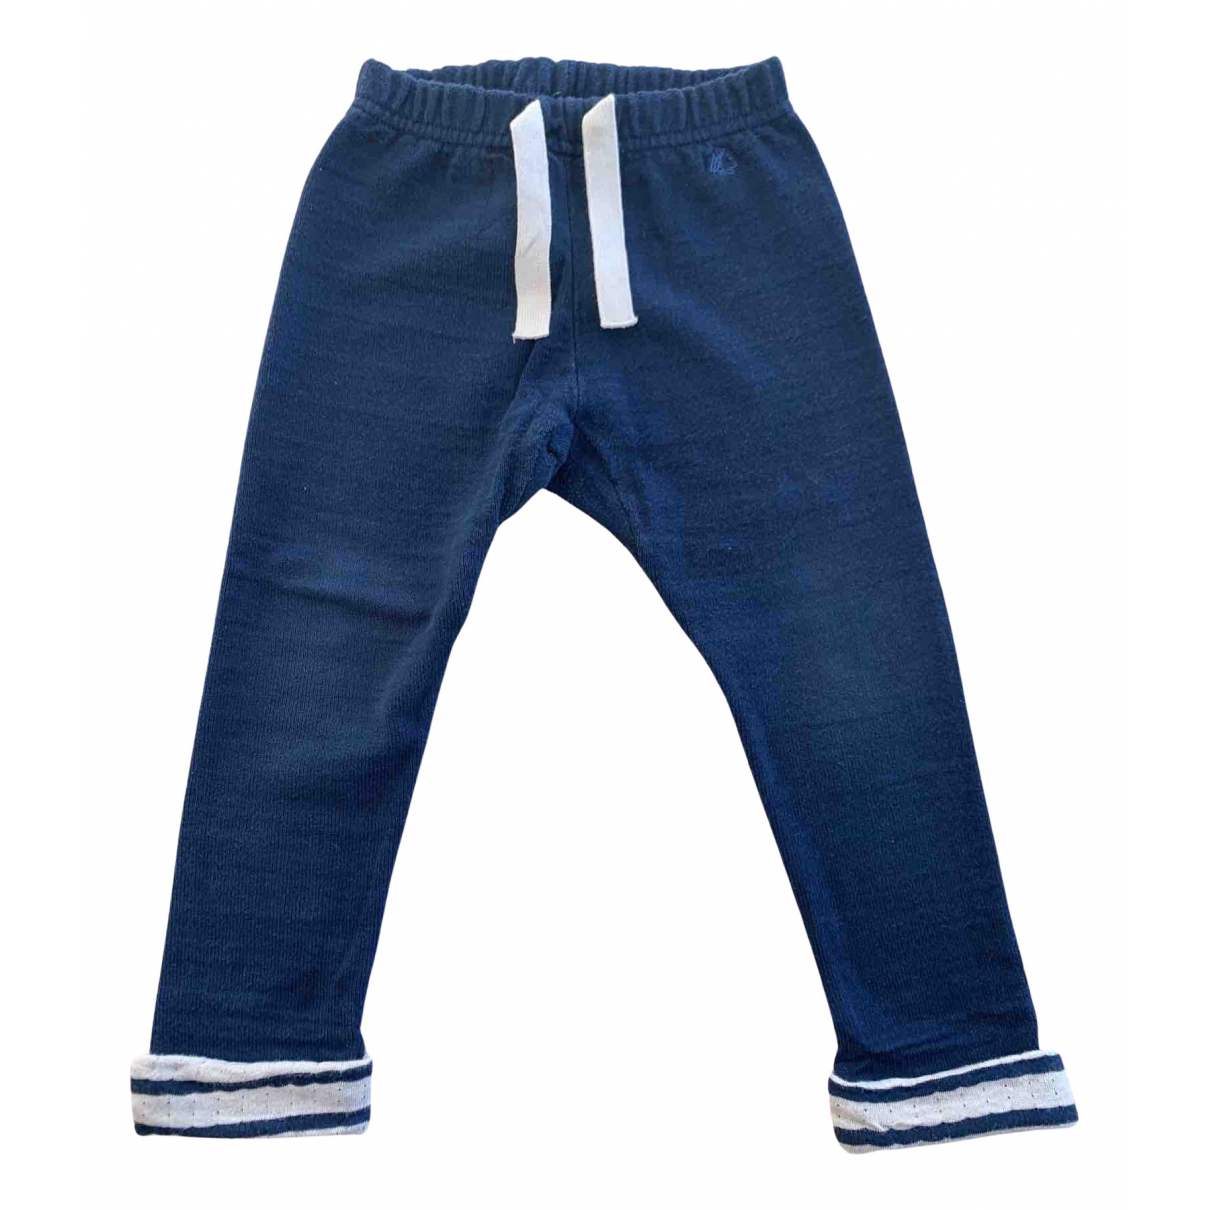 Petit Bateau N Navy Cotton Trousers for Kids 3 years - up to 98cm FR